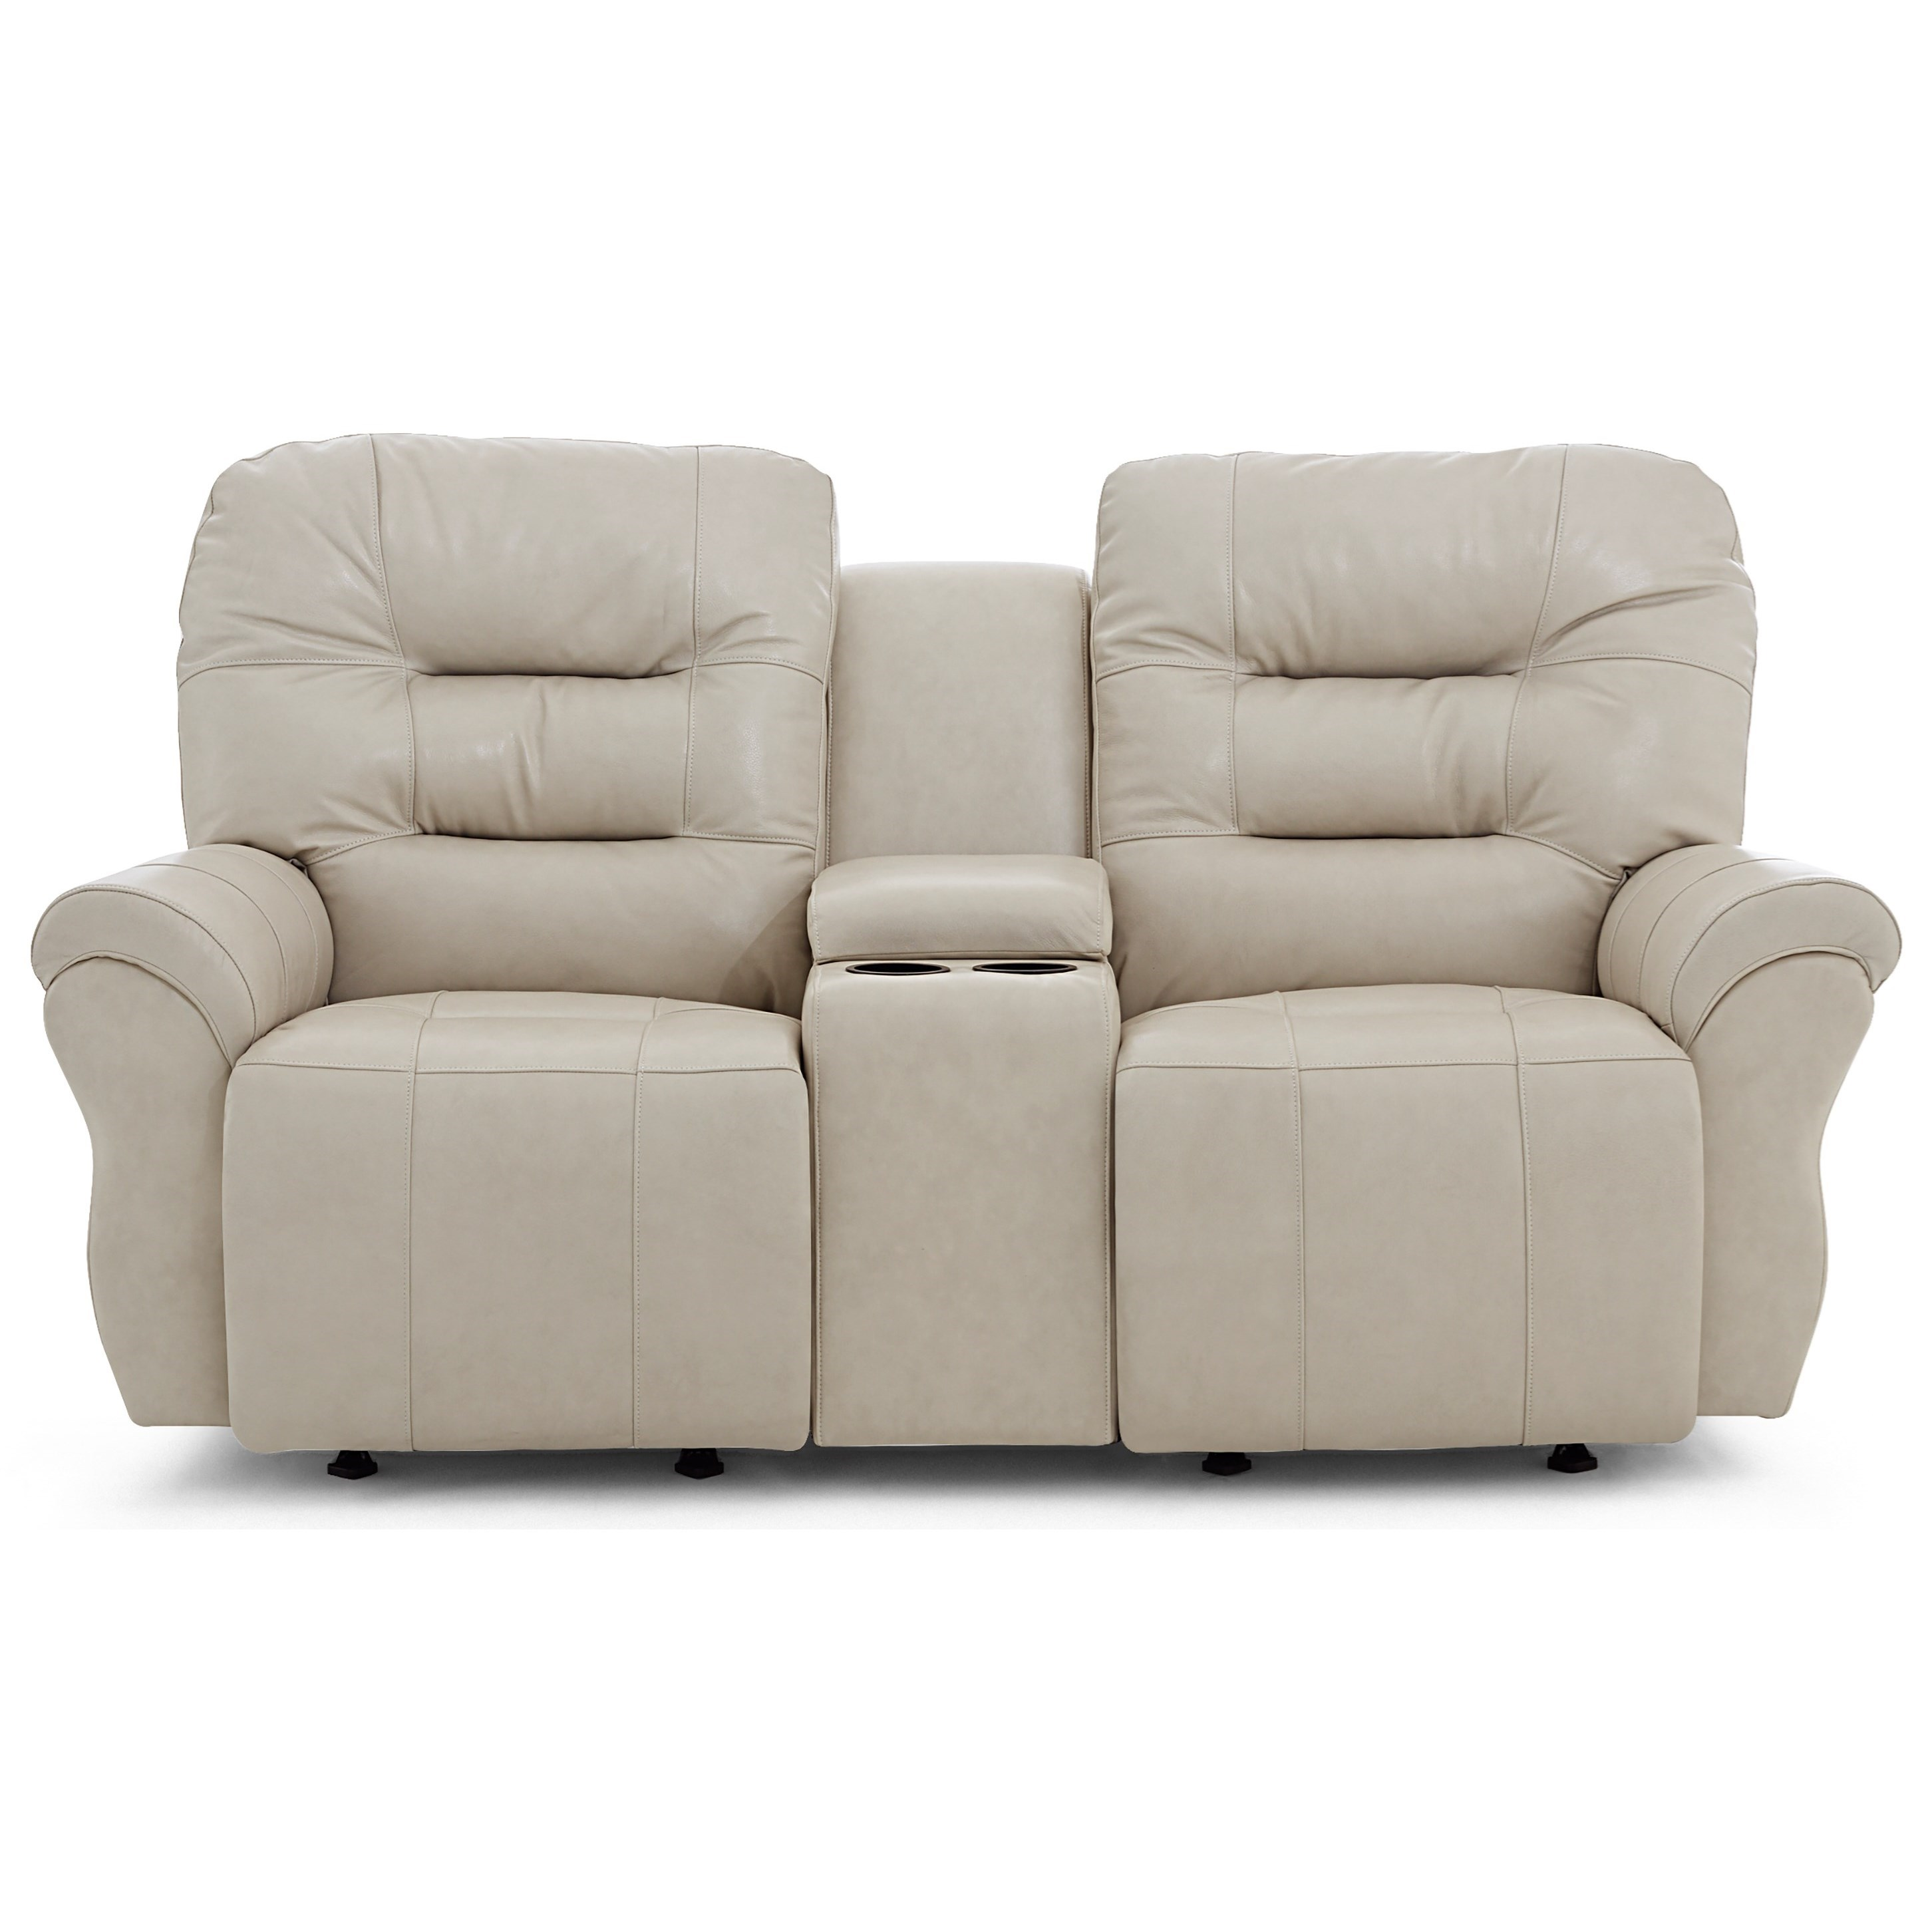 Unity Power Rocker Console Loveseat Chaise by Best Home Furnishings at Baer's Furniture